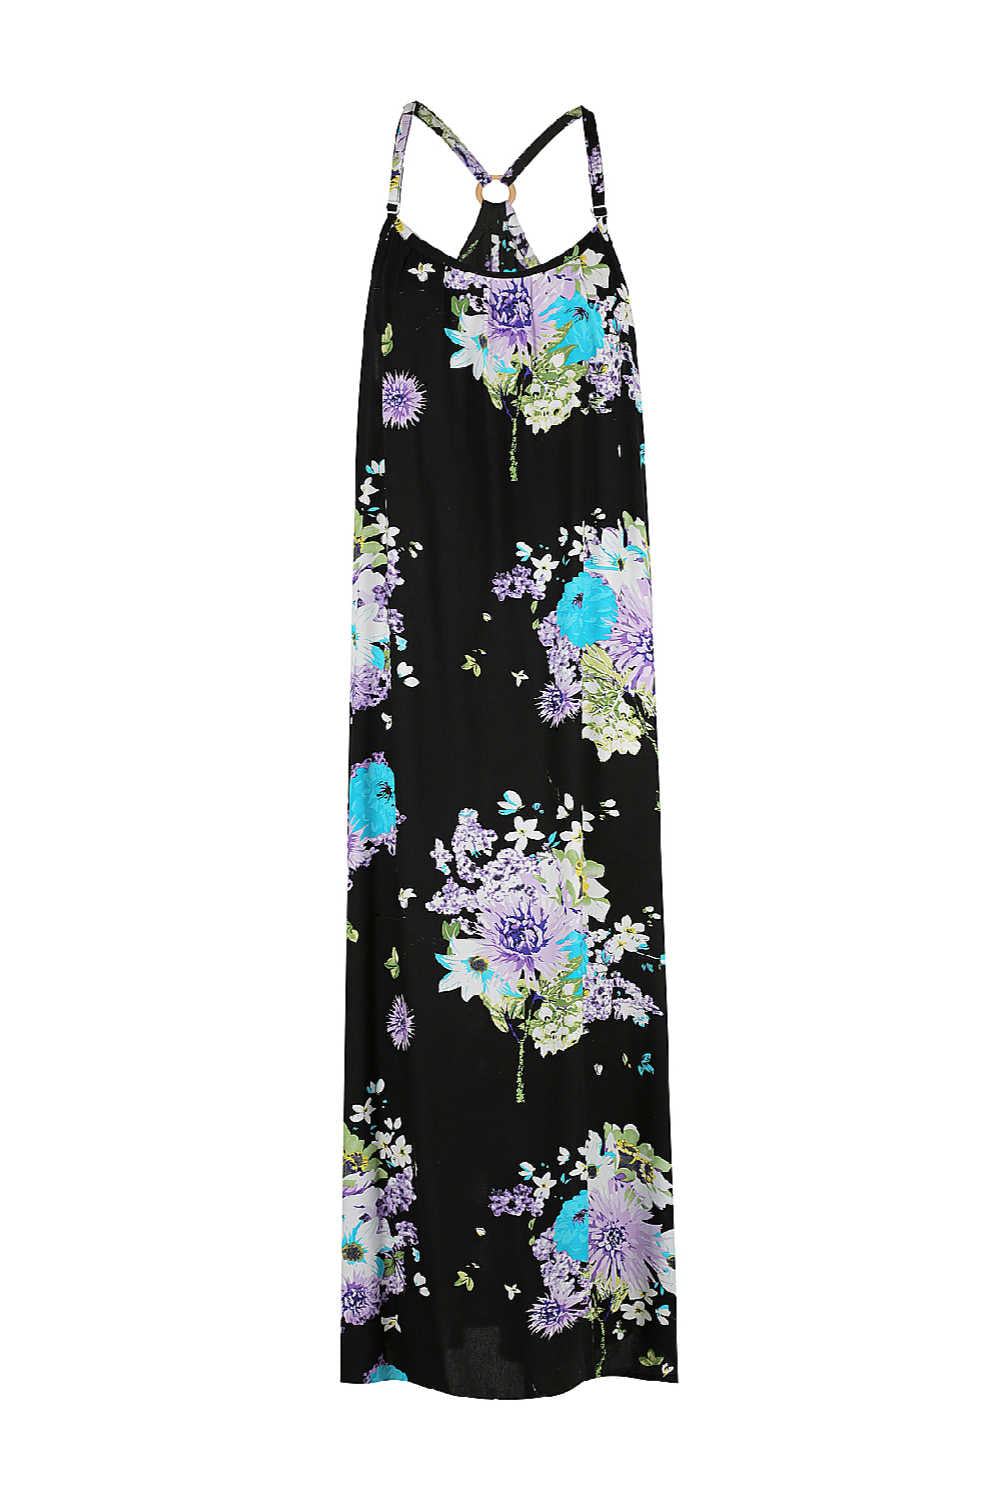 summer-maxi-dress-floral-design-black-turquoise-lilac